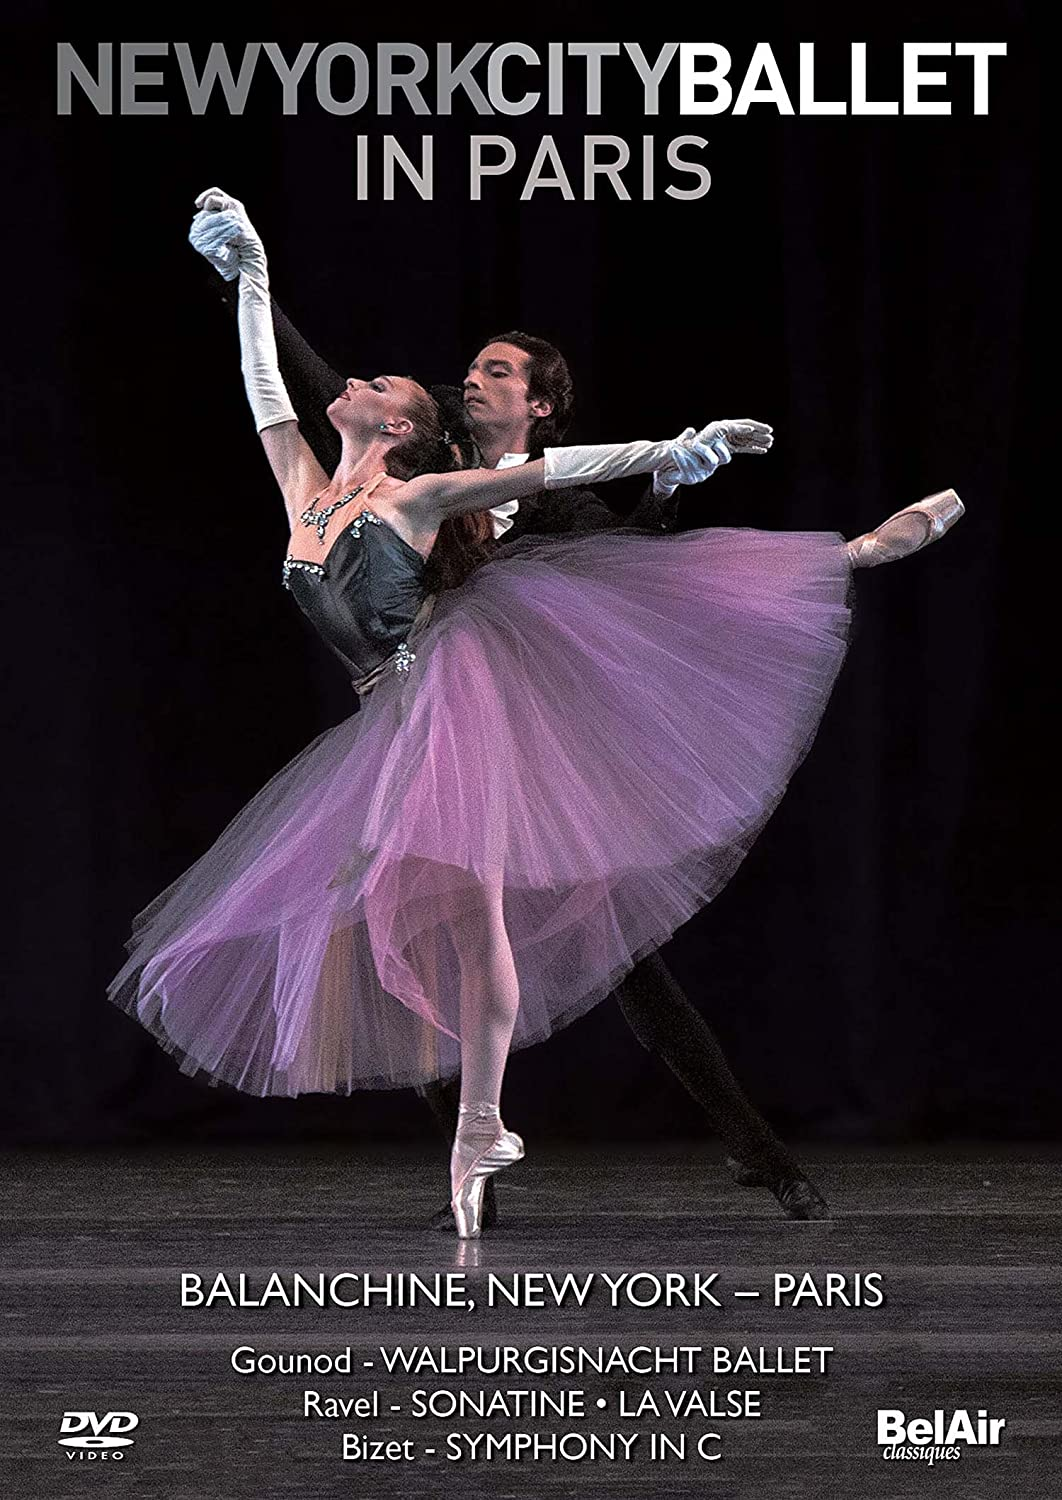 New York City Ballet in Paris Walpurgisnacht Ballet Orchestre Promethee Daniel Capps Bel Air Classiques